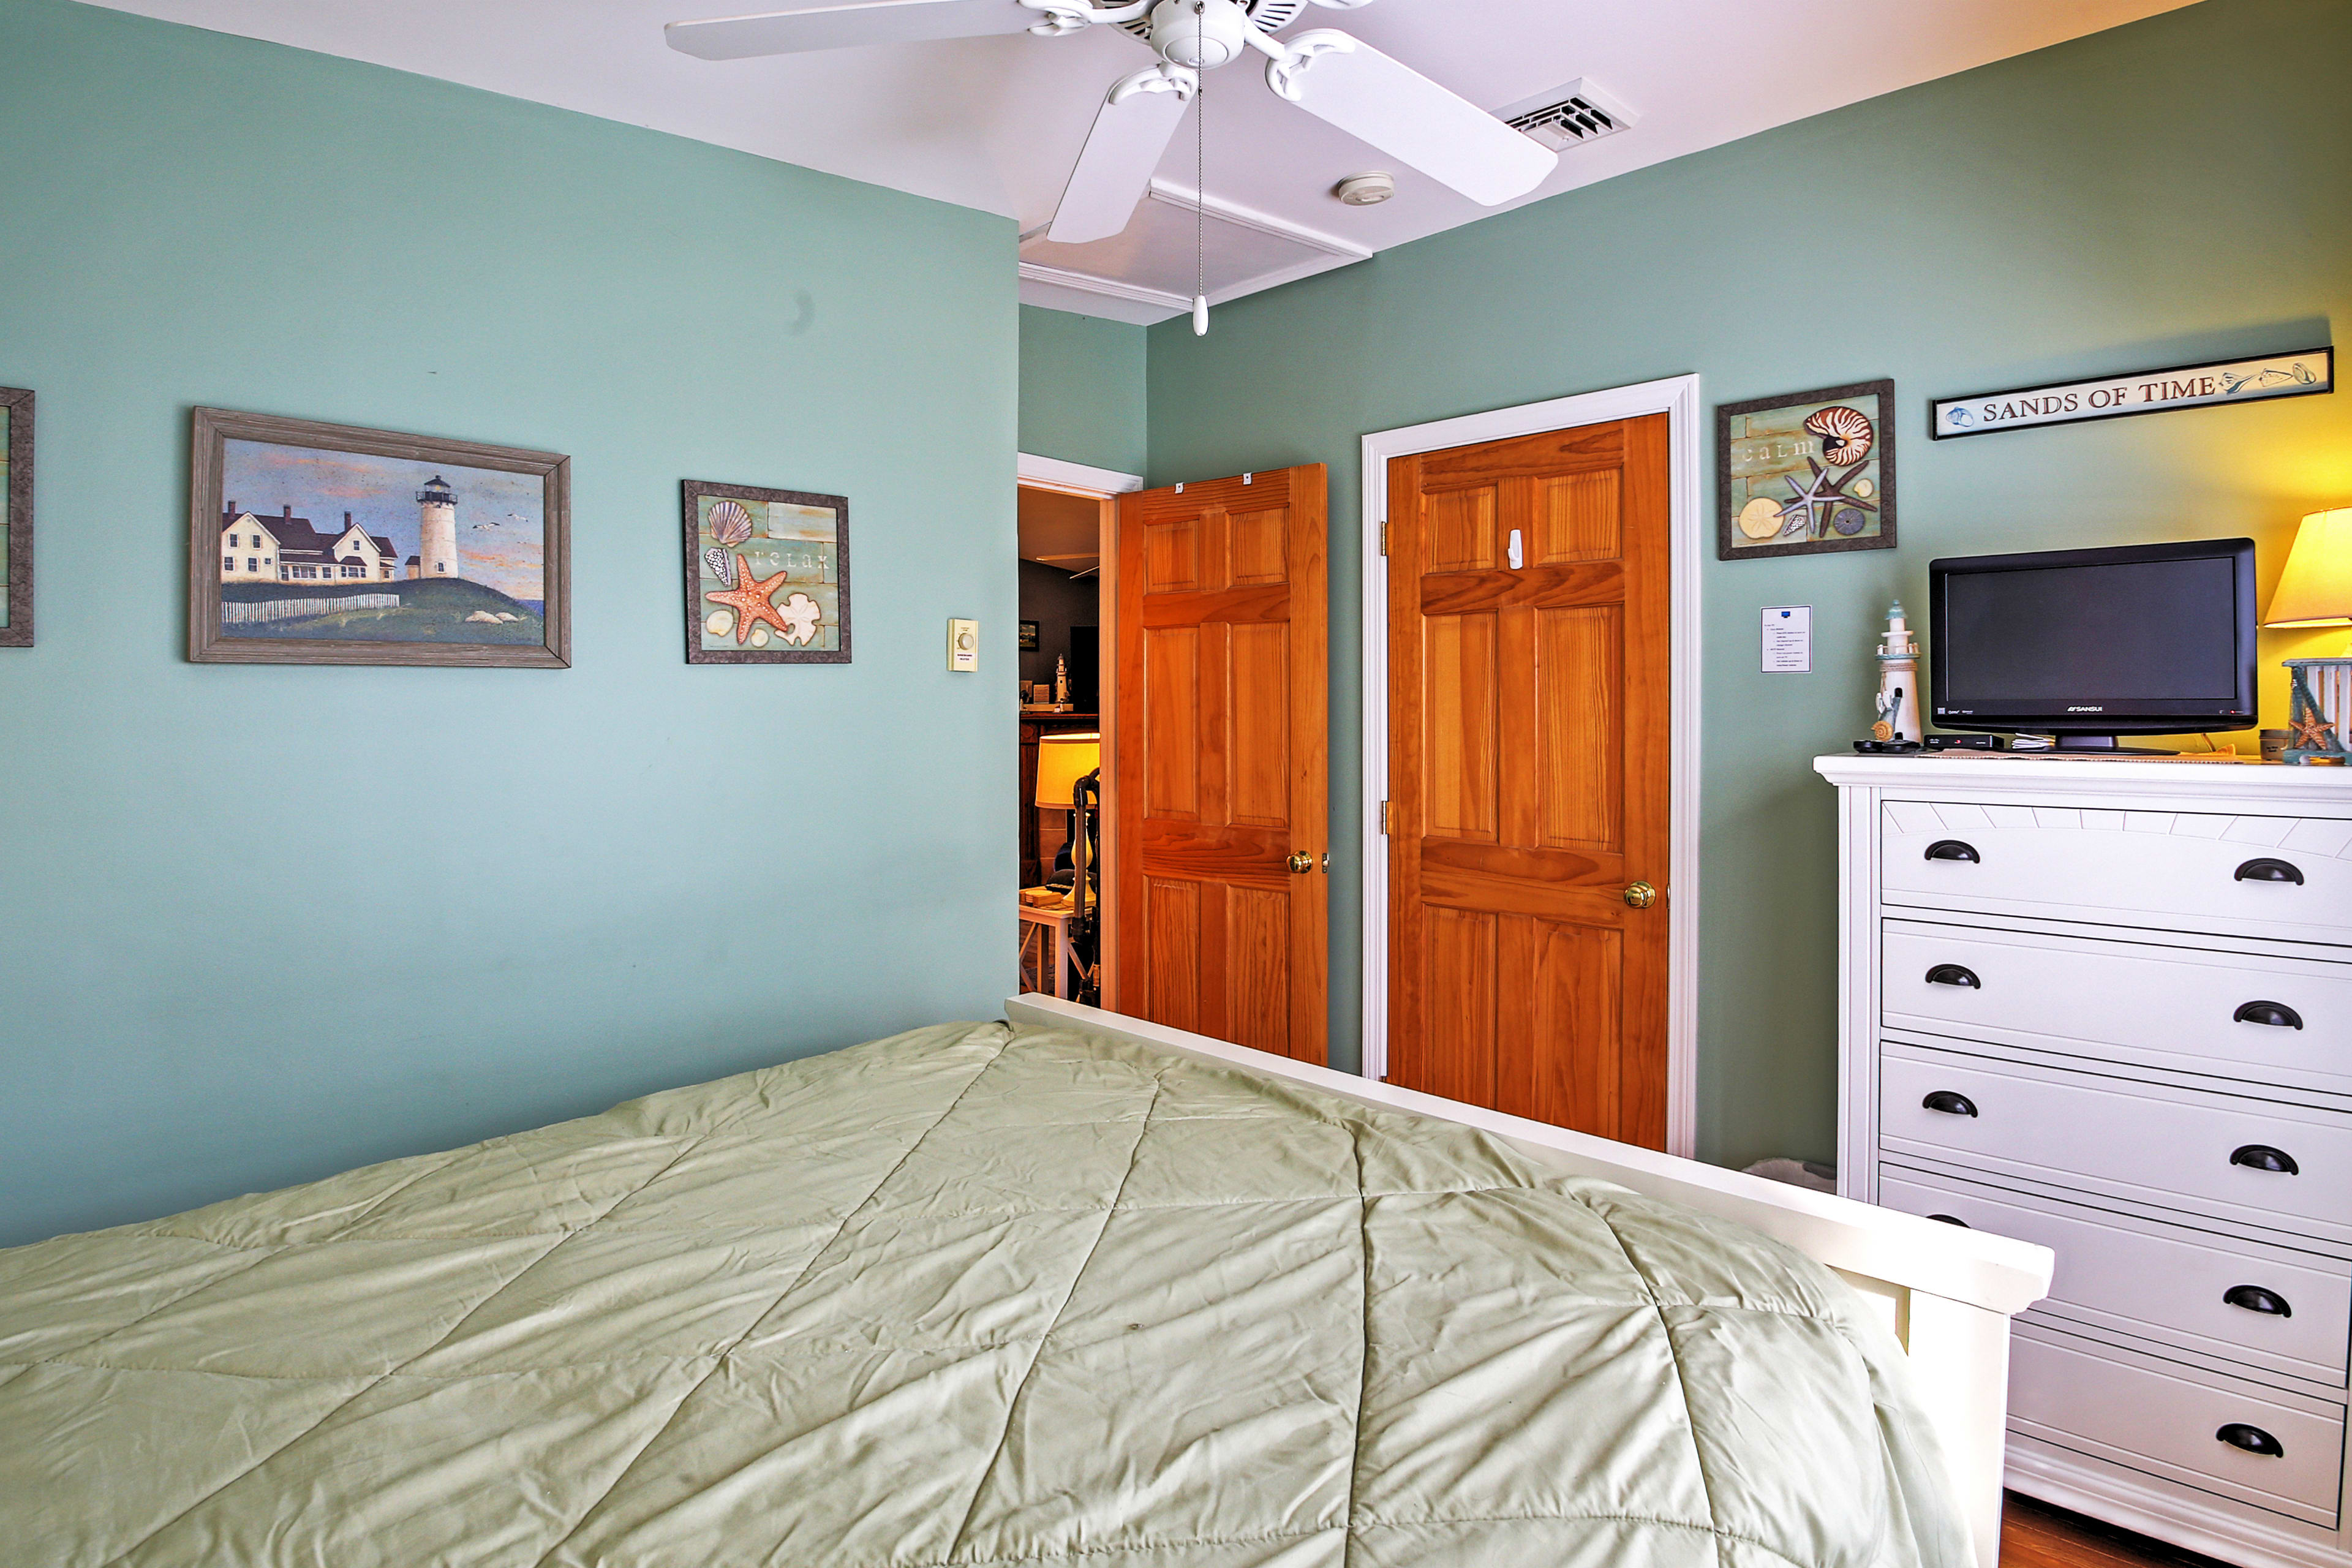 Wind down with a movie on the TV in the master bedroom.